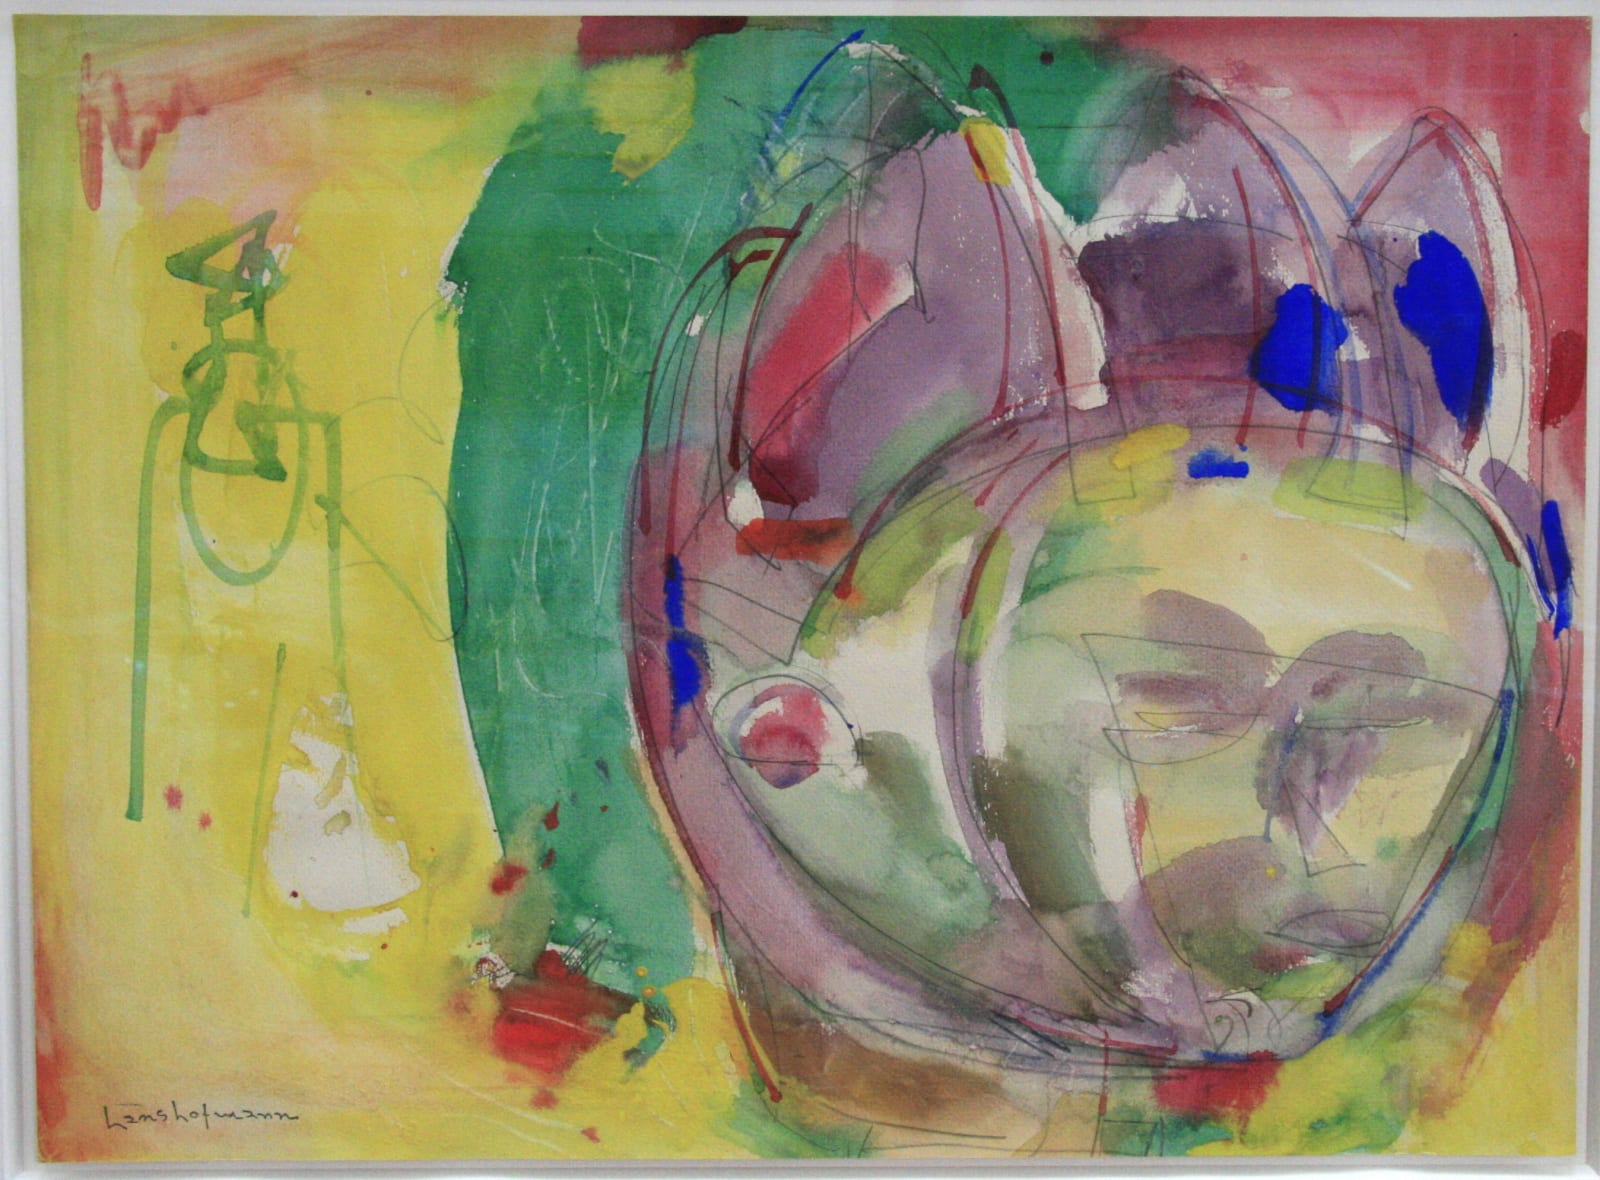 Hans HOFMANN (1880-1966) Untitled, 1943 Pencil and watercolour on paper 17 ¾ x 24 inches / 45 x 61 cm Signed with estate stamp, lower left